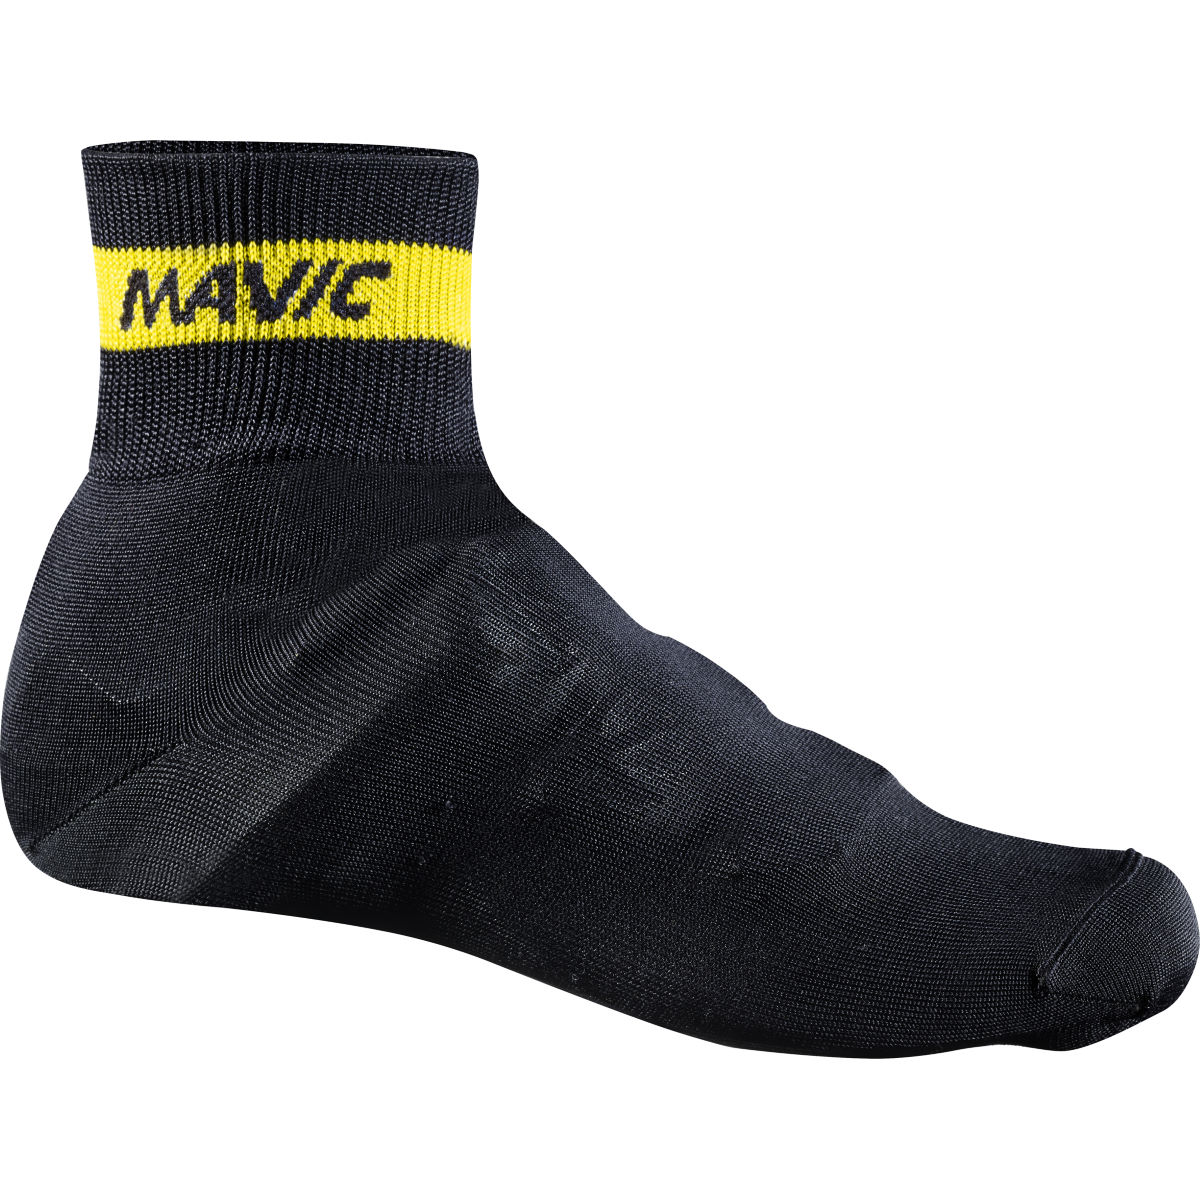 Couvre-chaussures Mavic Knit - S Noir Couvre-chaussures